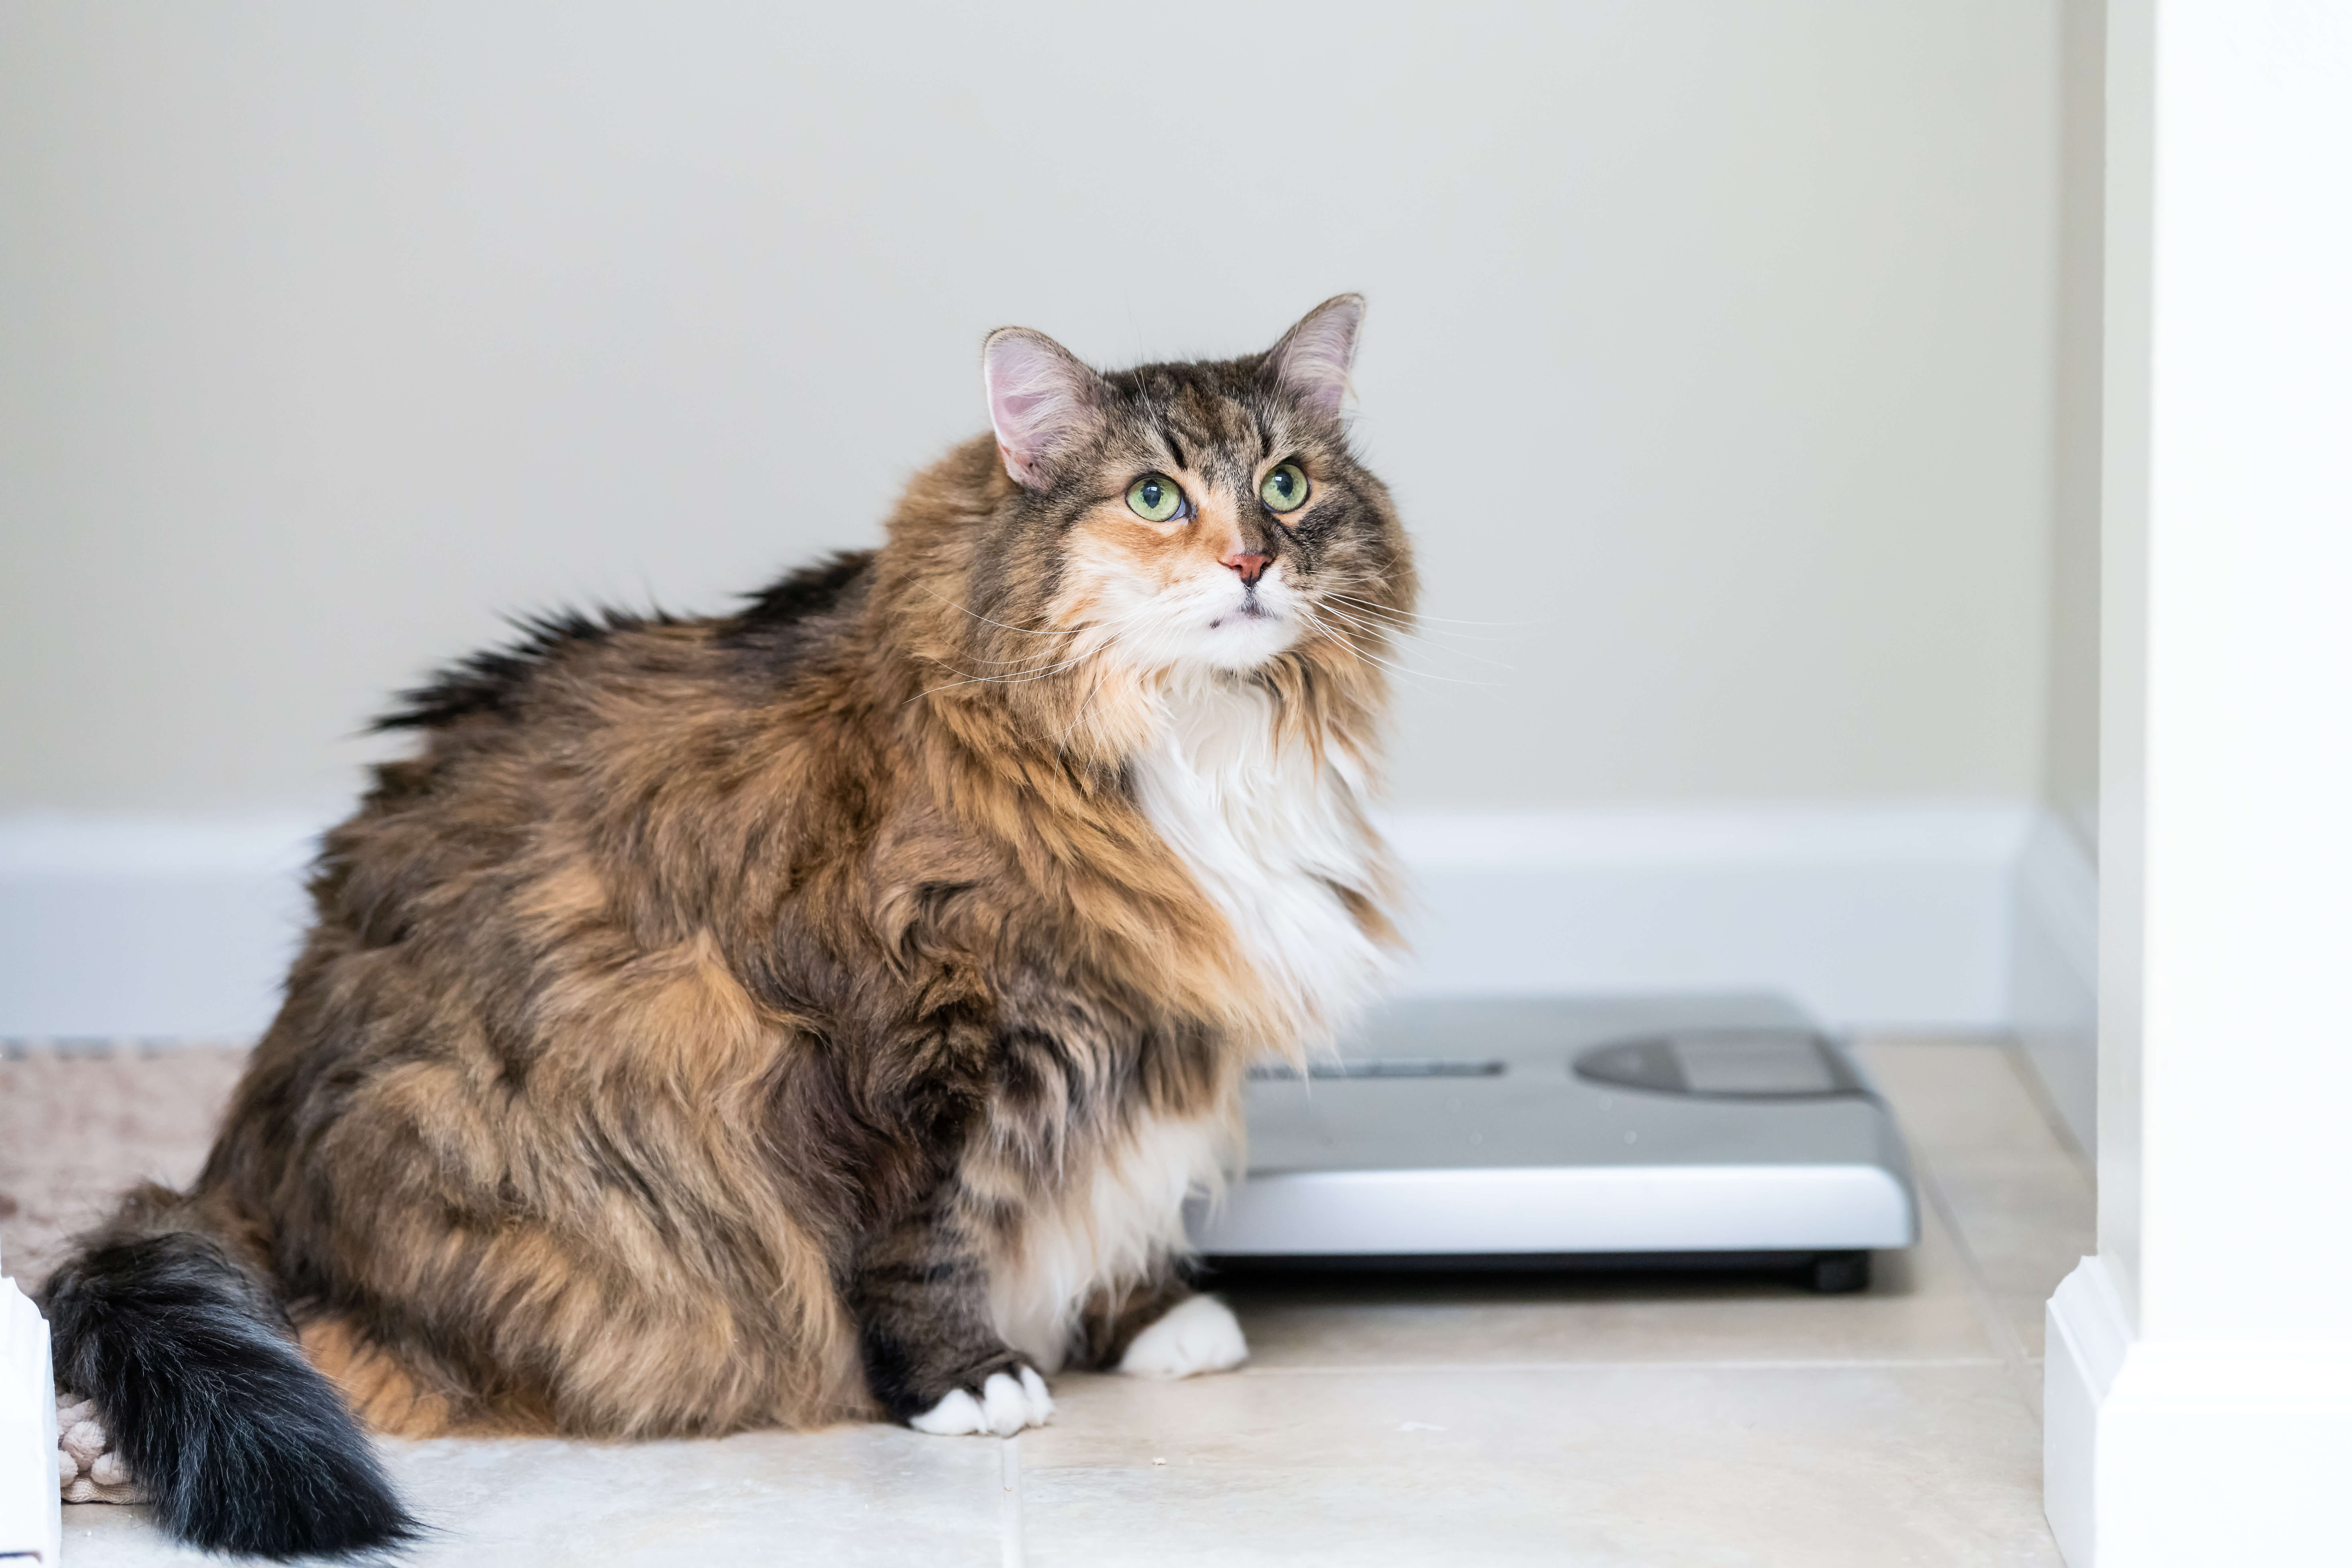 obese cat next to scale